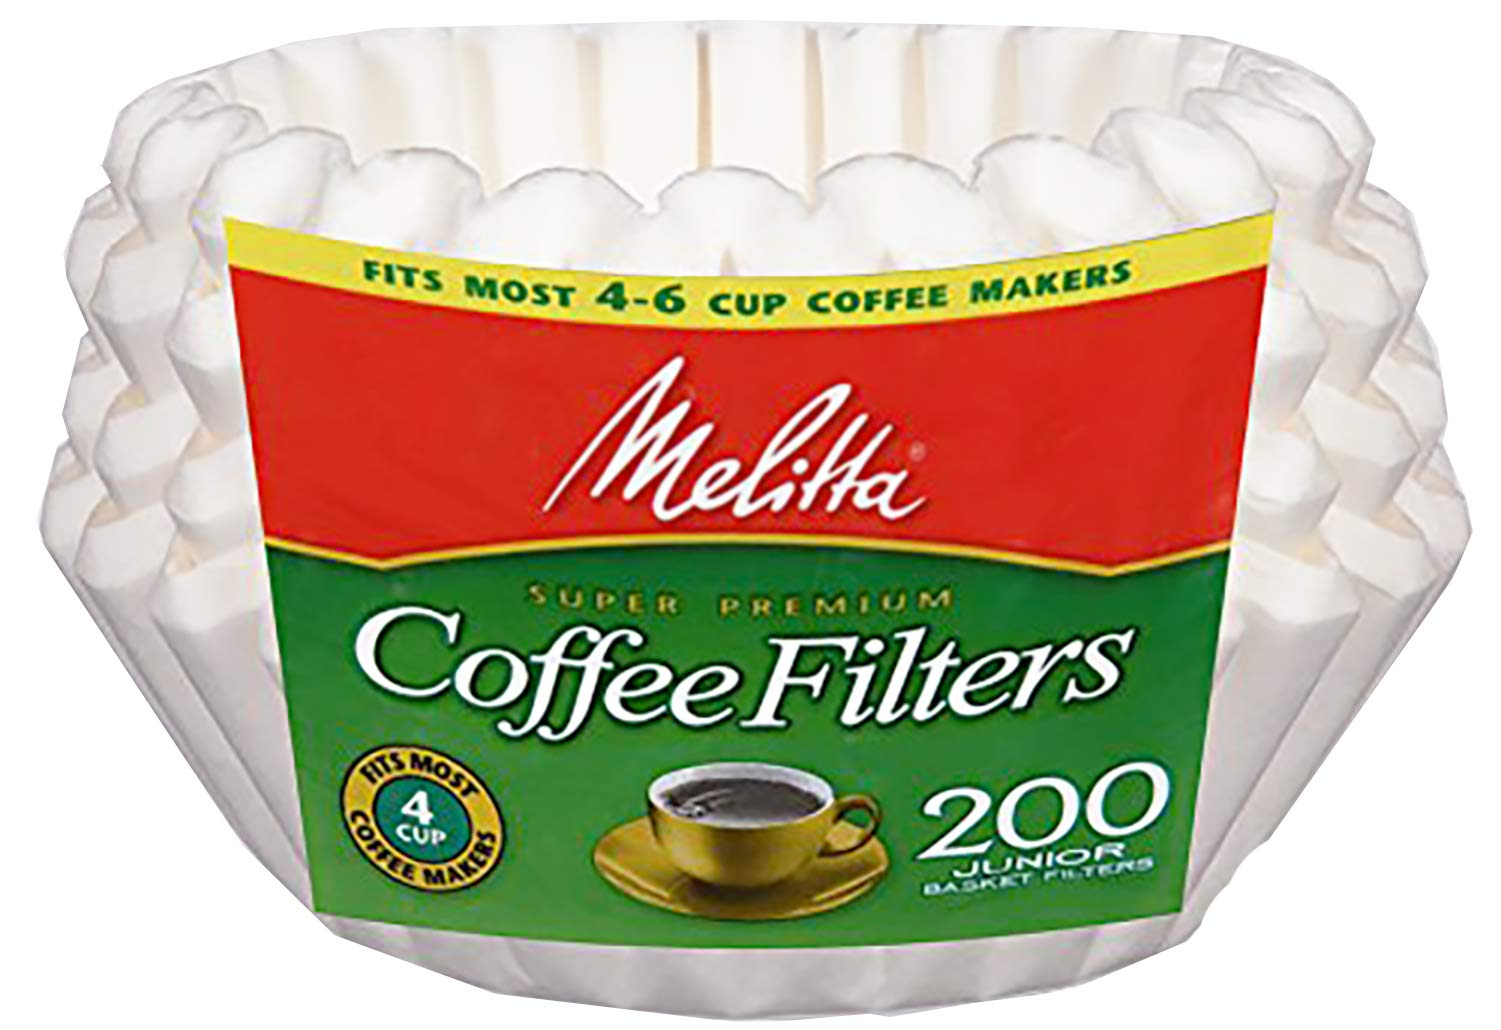 Melitta Basket Coffee Filters, White (8 to 12 Cup) 200 Count (Pack of 24) by Melitta